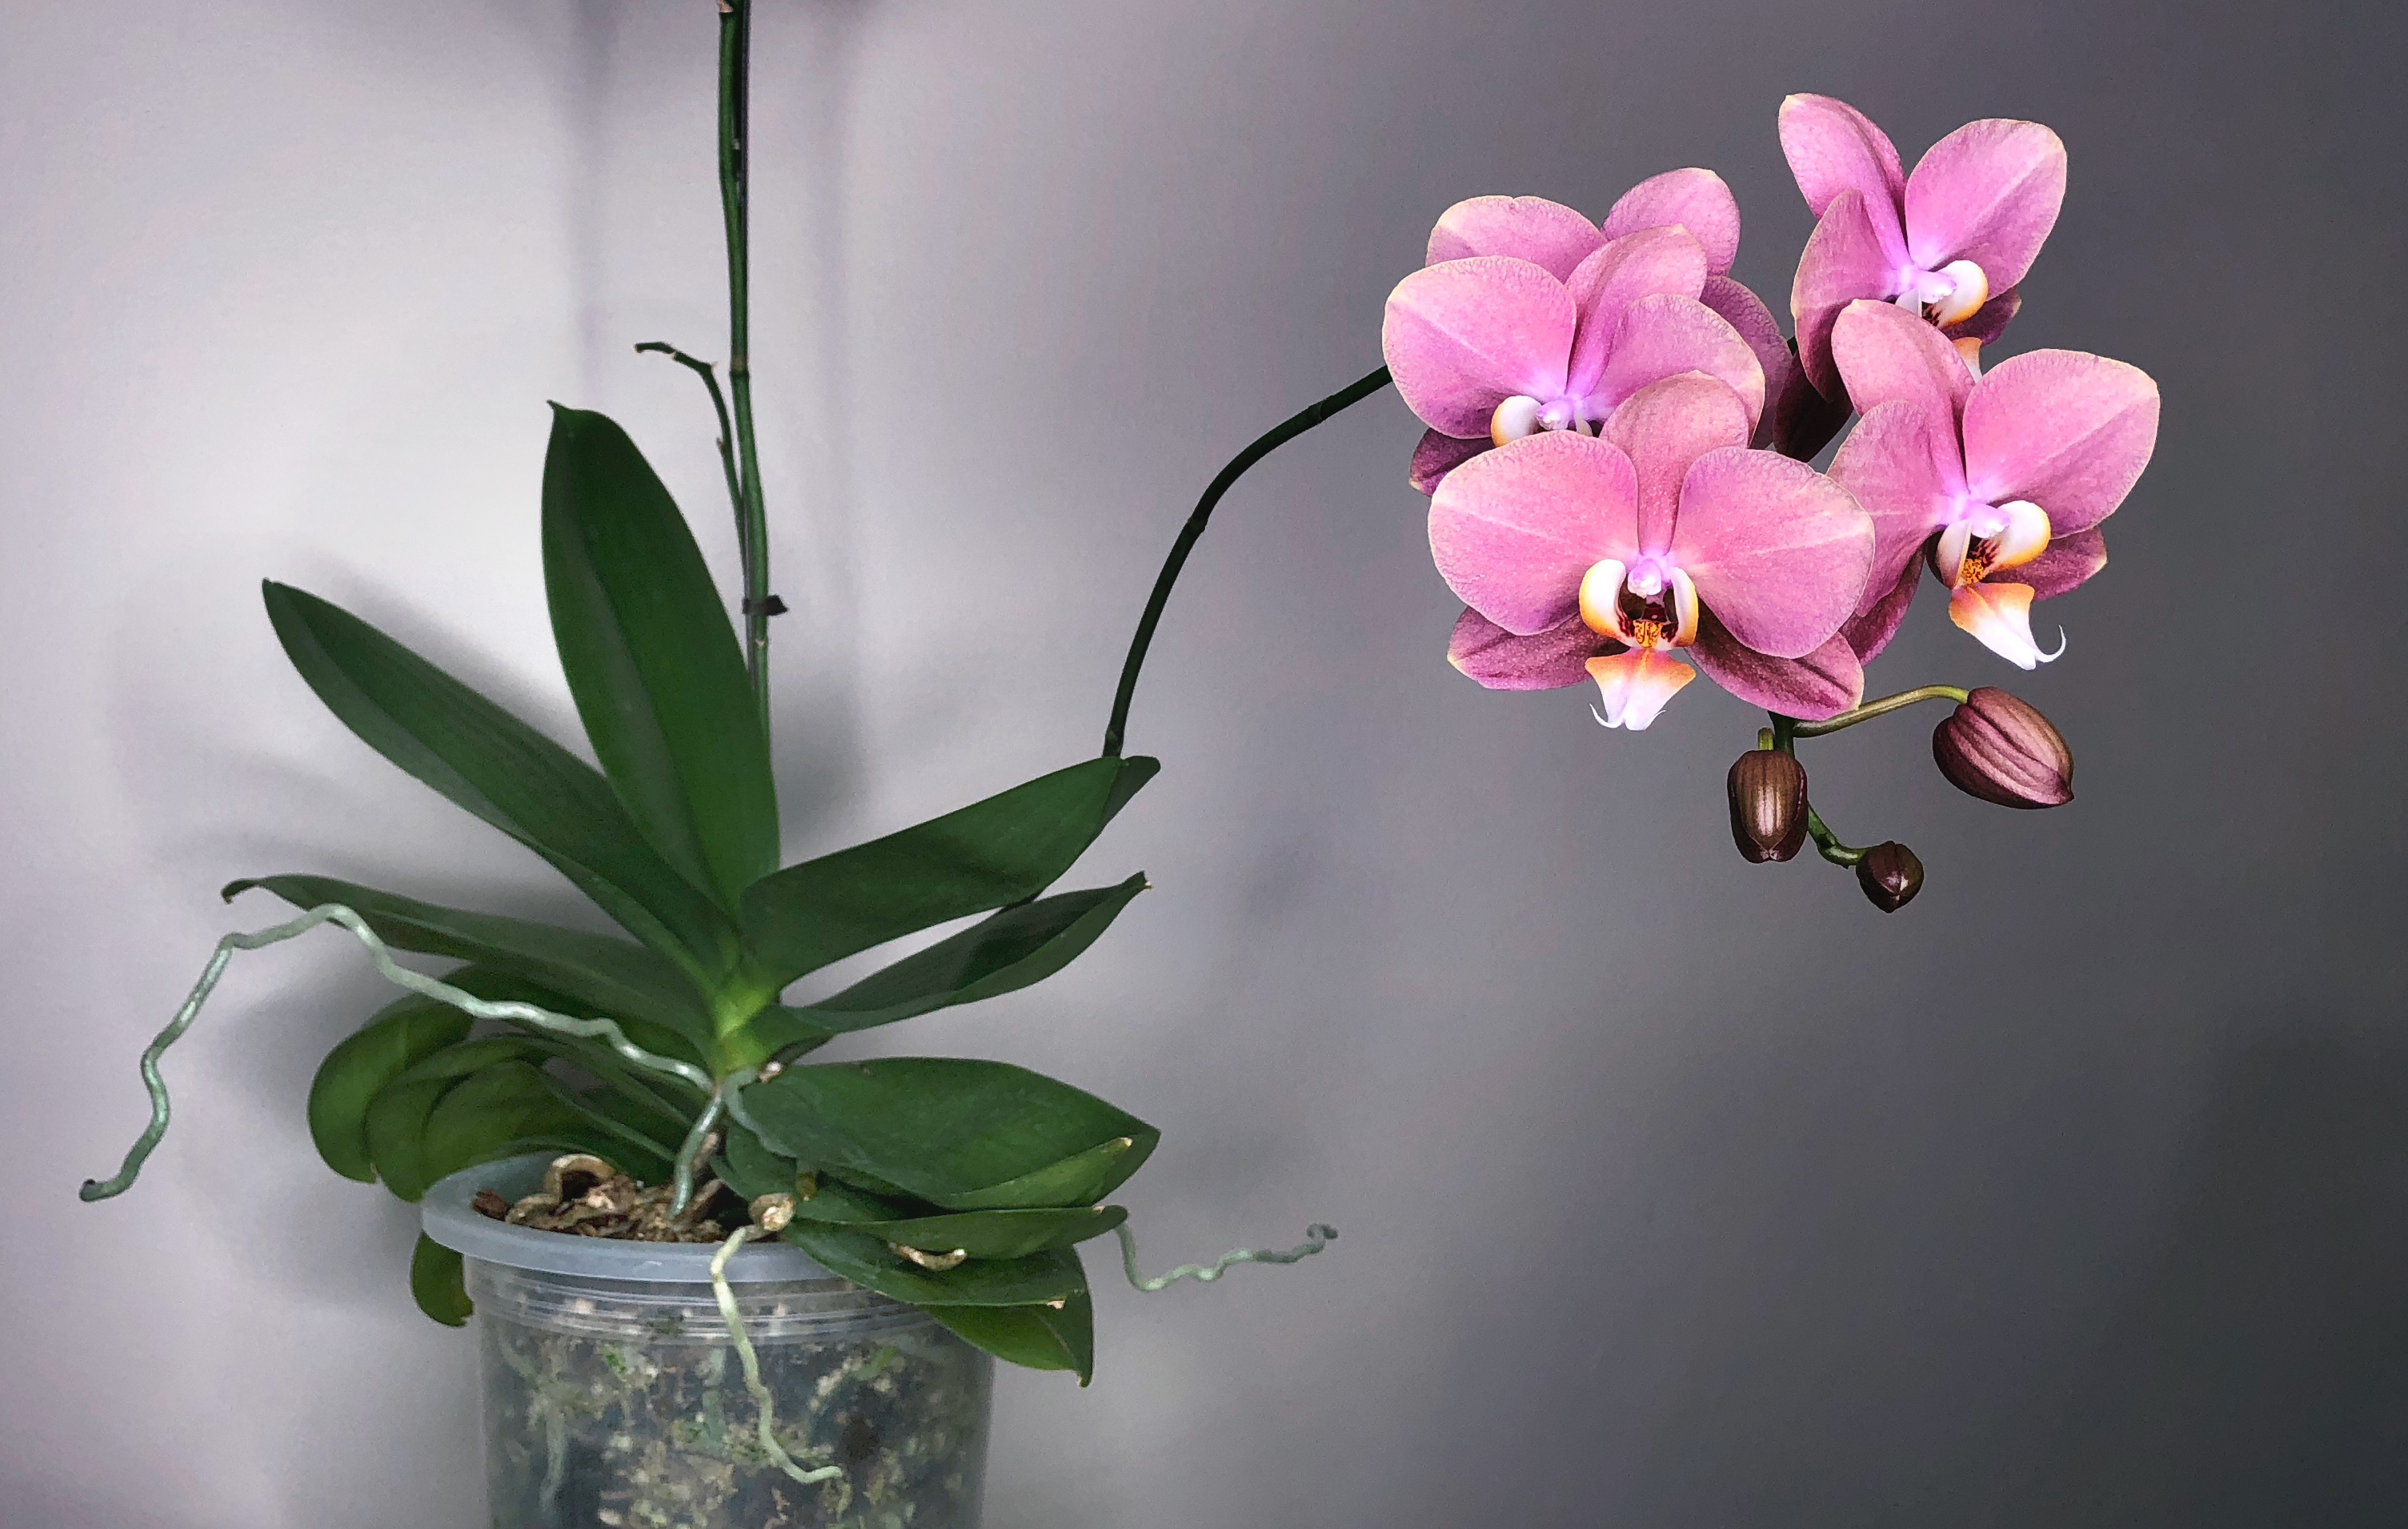 The Beginner S Guide To Keeping Your Phalaenopsis Orchid Alive And